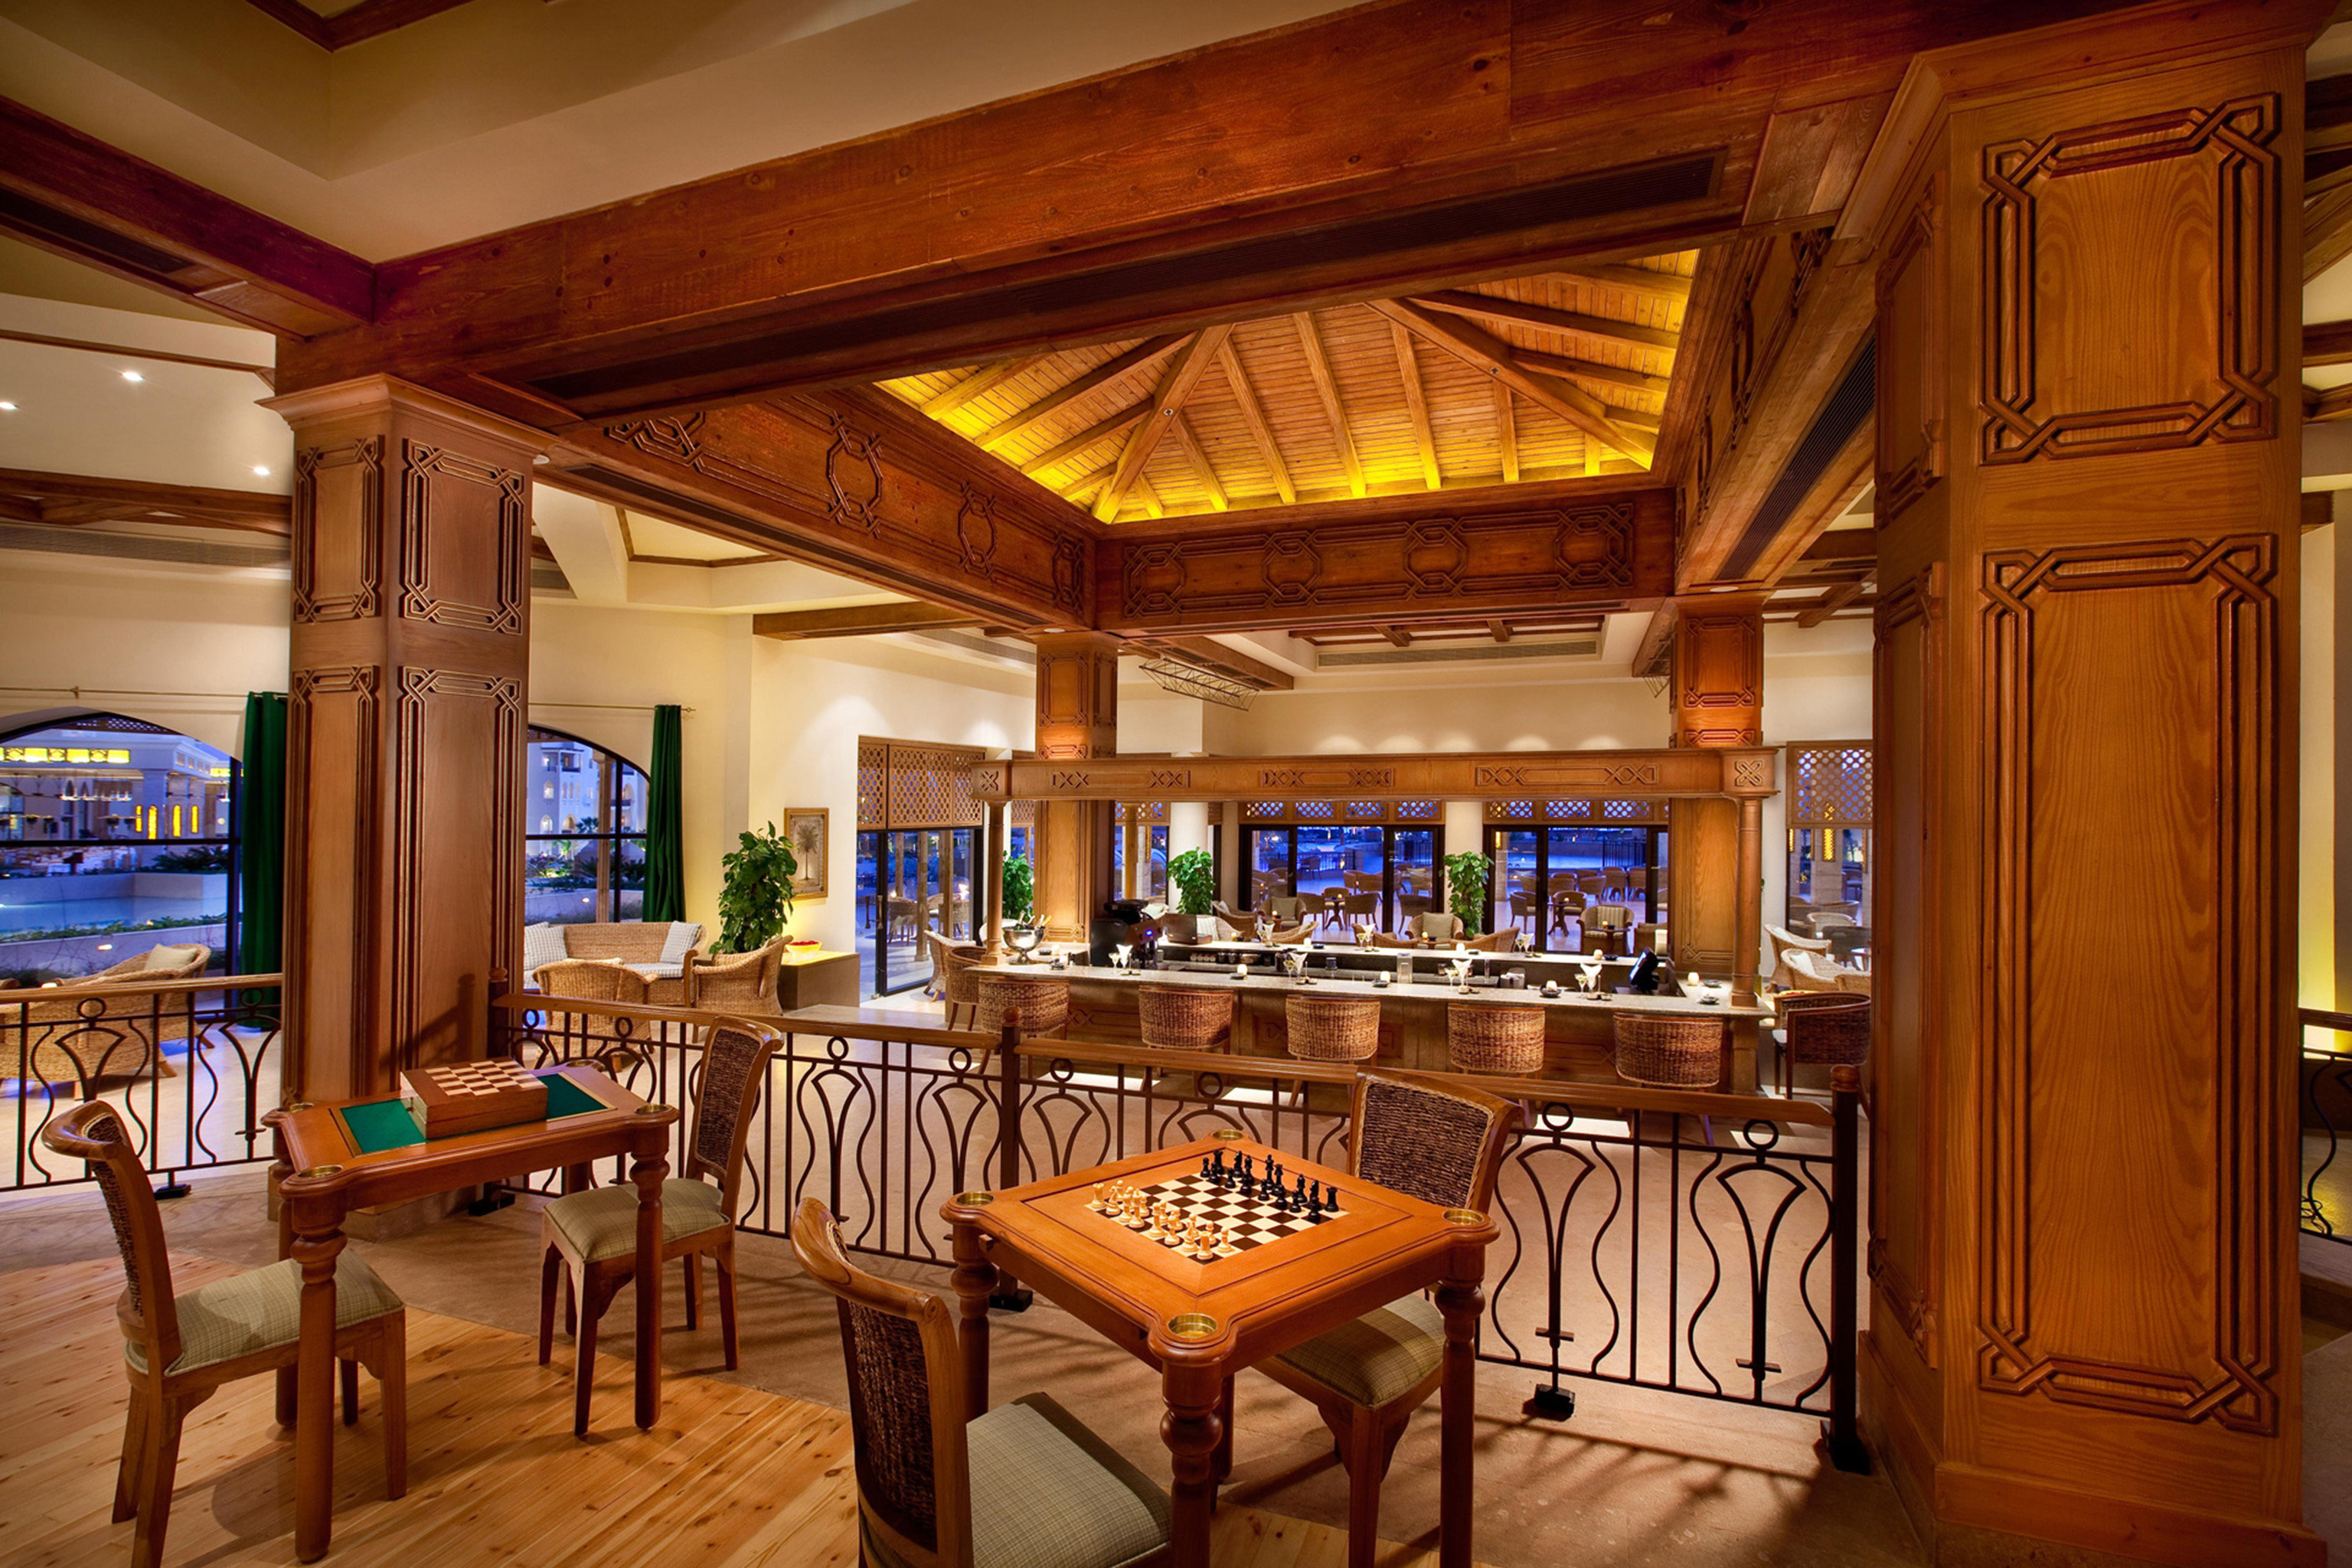 Lounge Luxury Kitchen property Resort recreation room home restaurant mansion Bar Dining palace